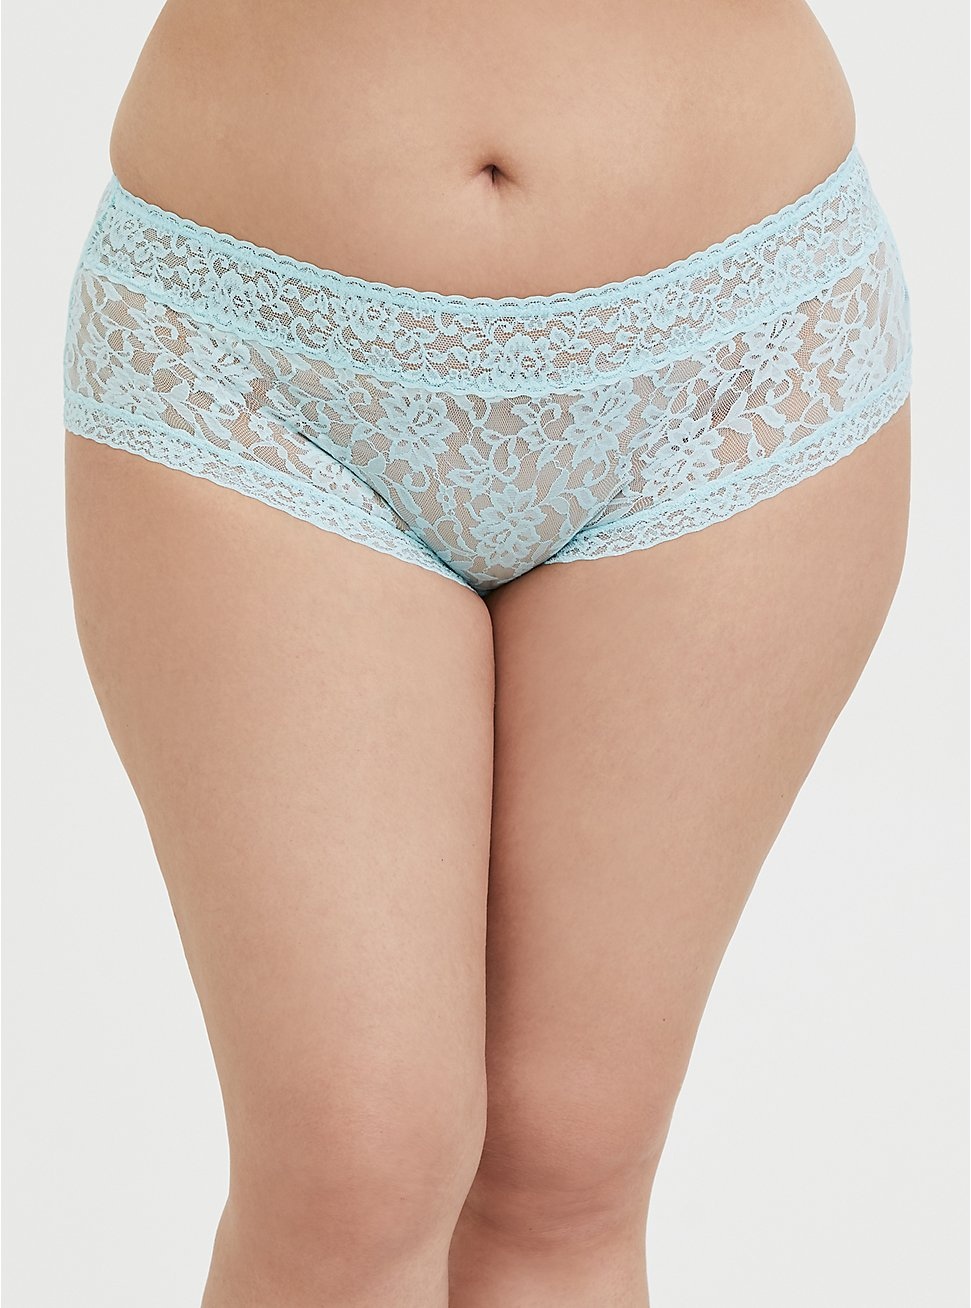 Aqua Blue Lacey Cheeky Panty, CLEARWATER, hi-res